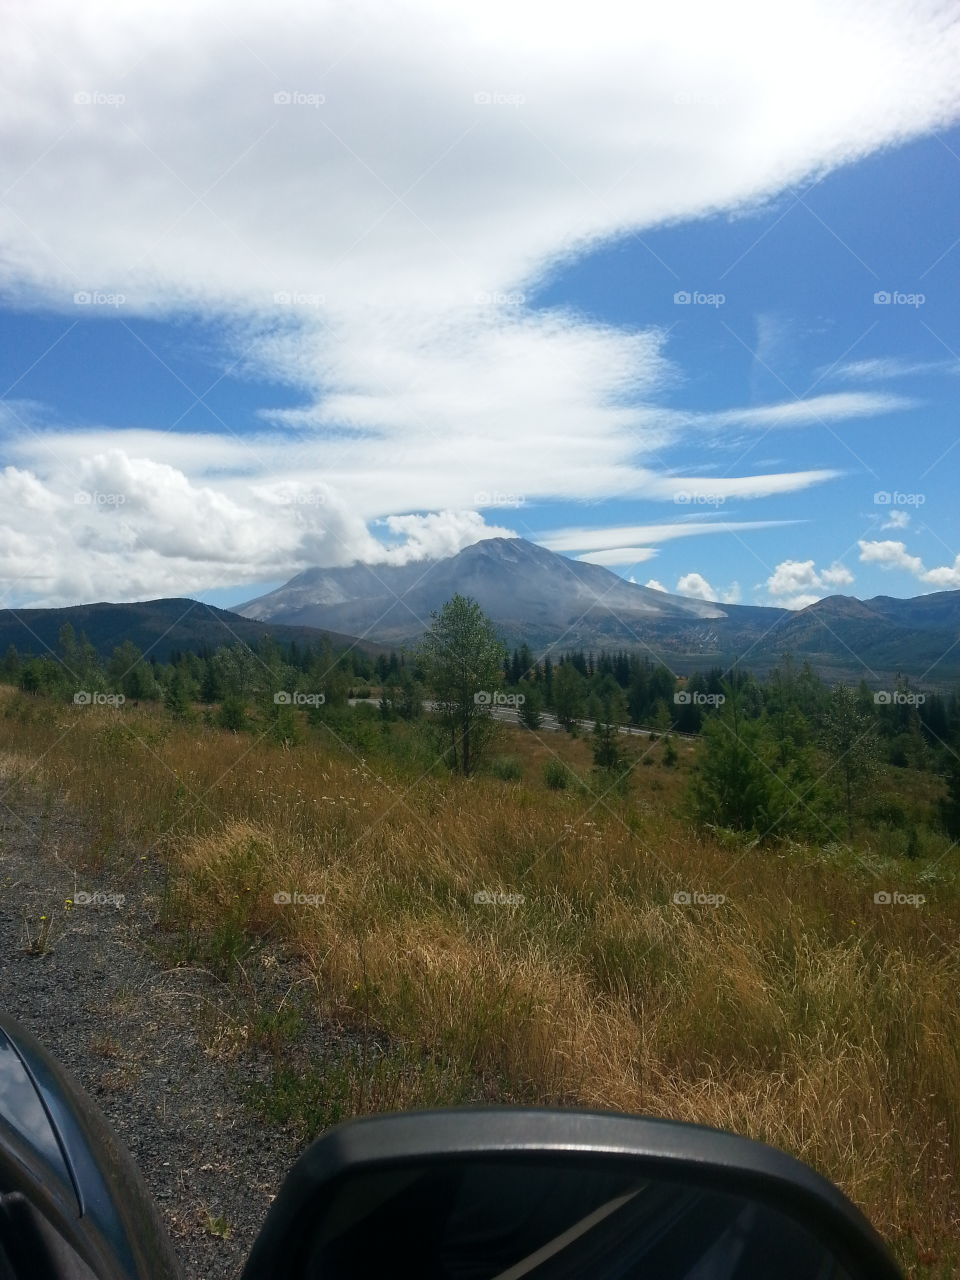 Mt. St. Helens. Went on a day trip to Mt. St. Helens and snapped this photo.